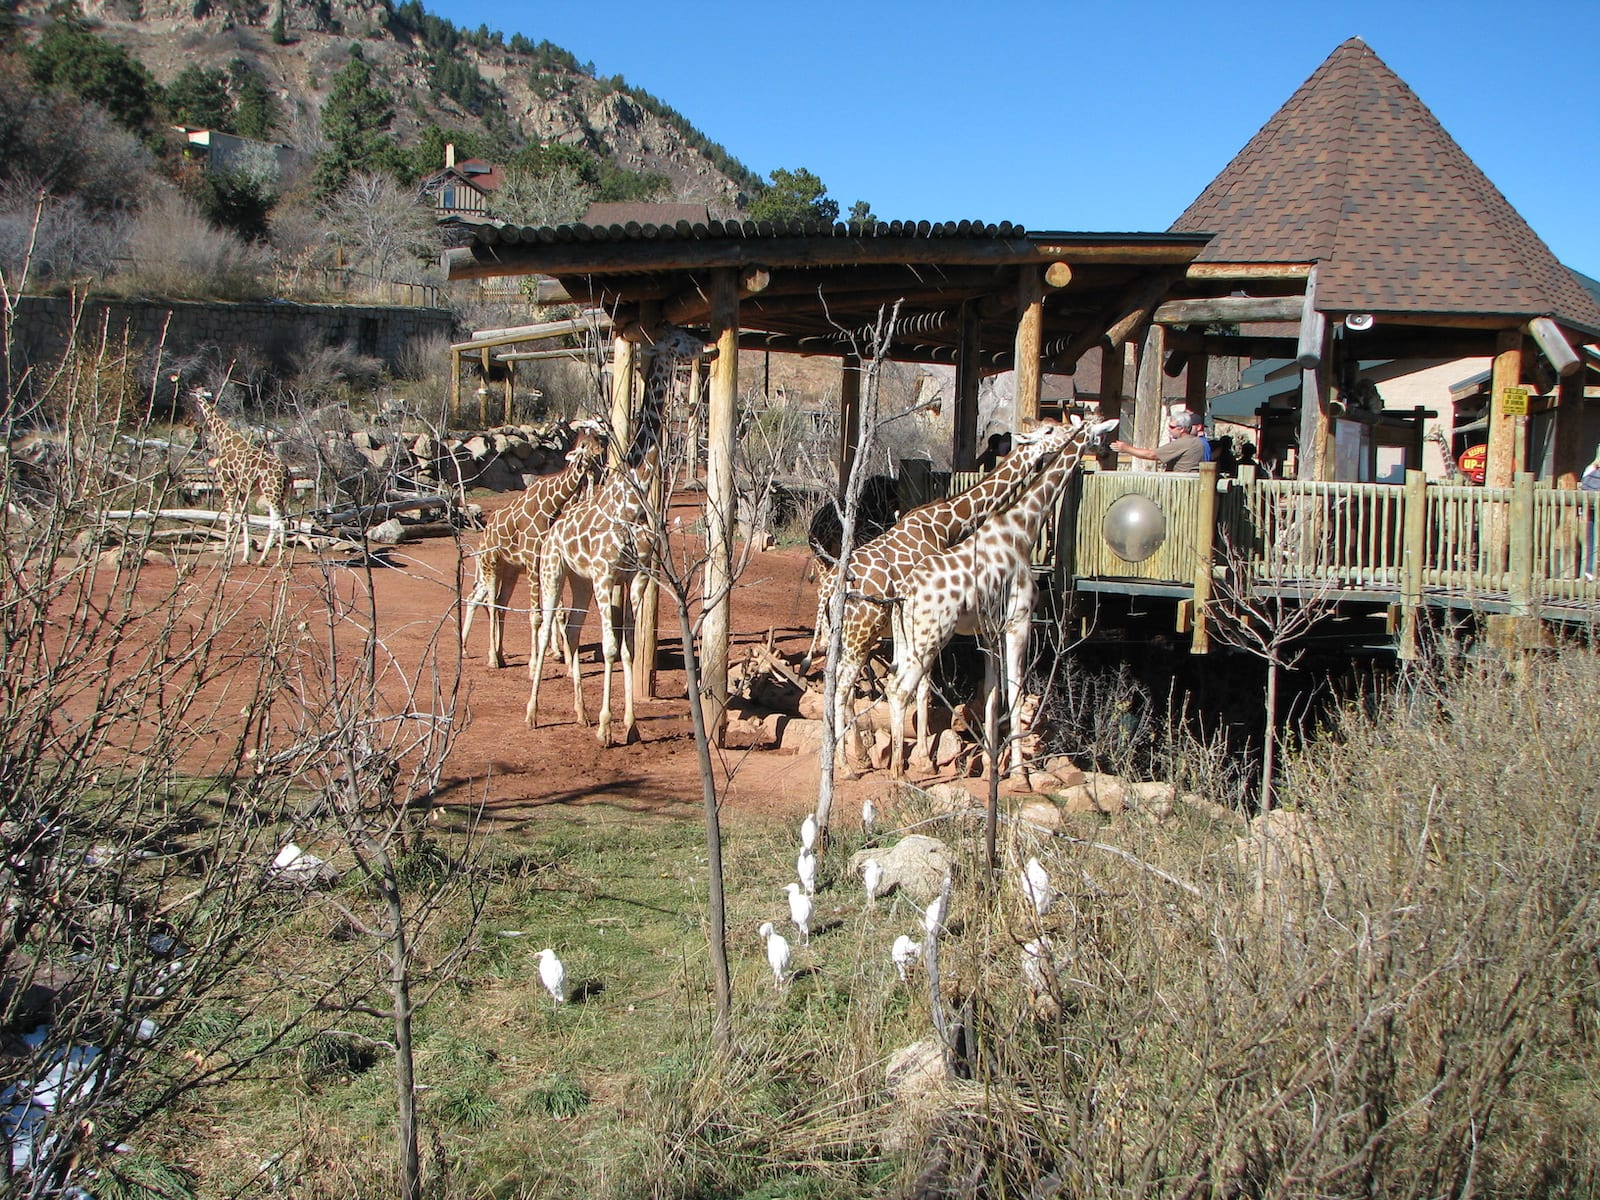 Cheyenne Mountain Zoo, Colorado